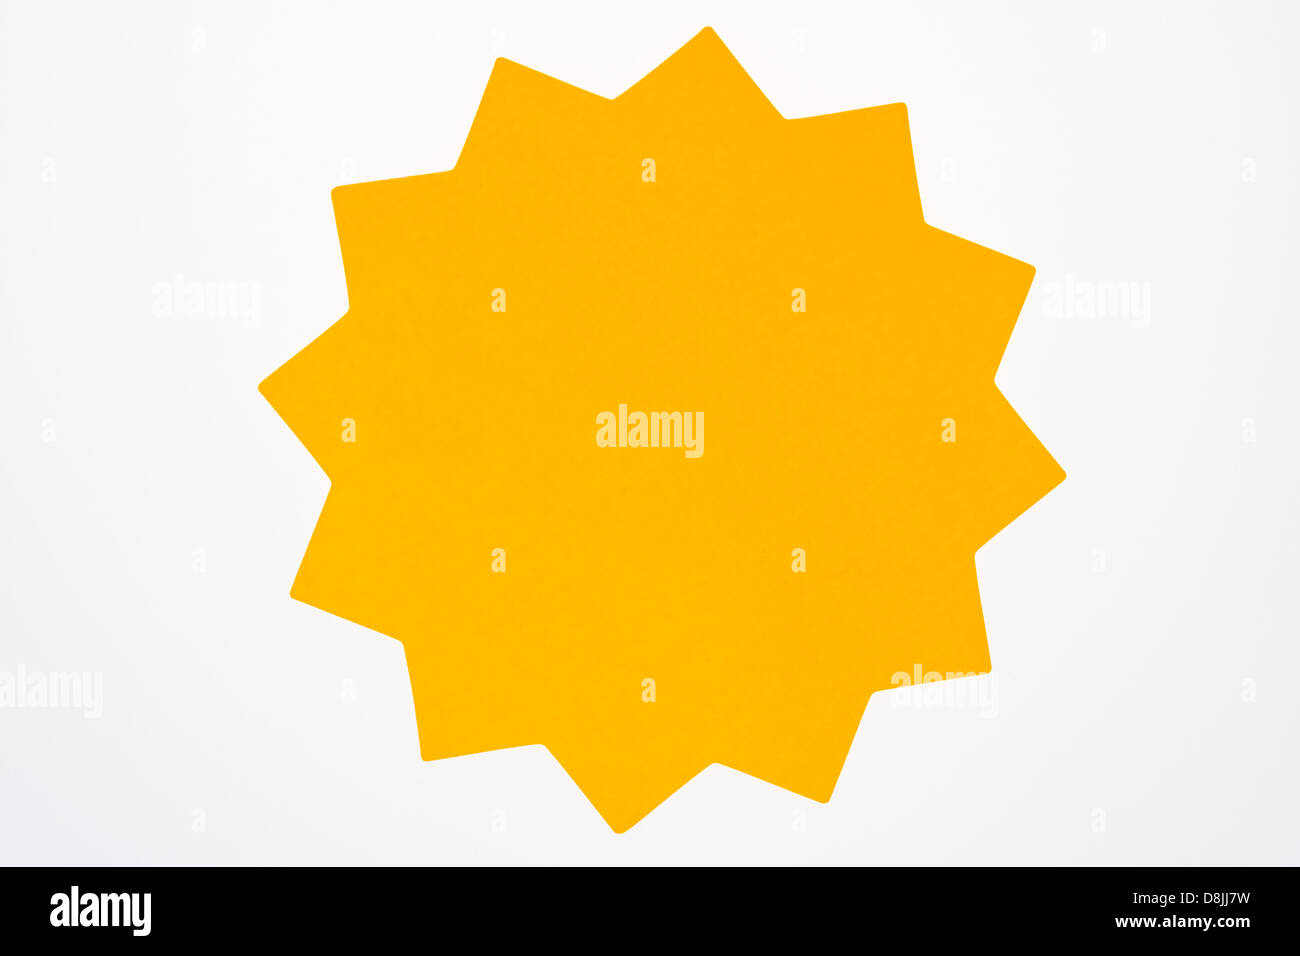 A blank orange star shaped sign usually used to advertise sales and specials isolated on white. - Stock Image